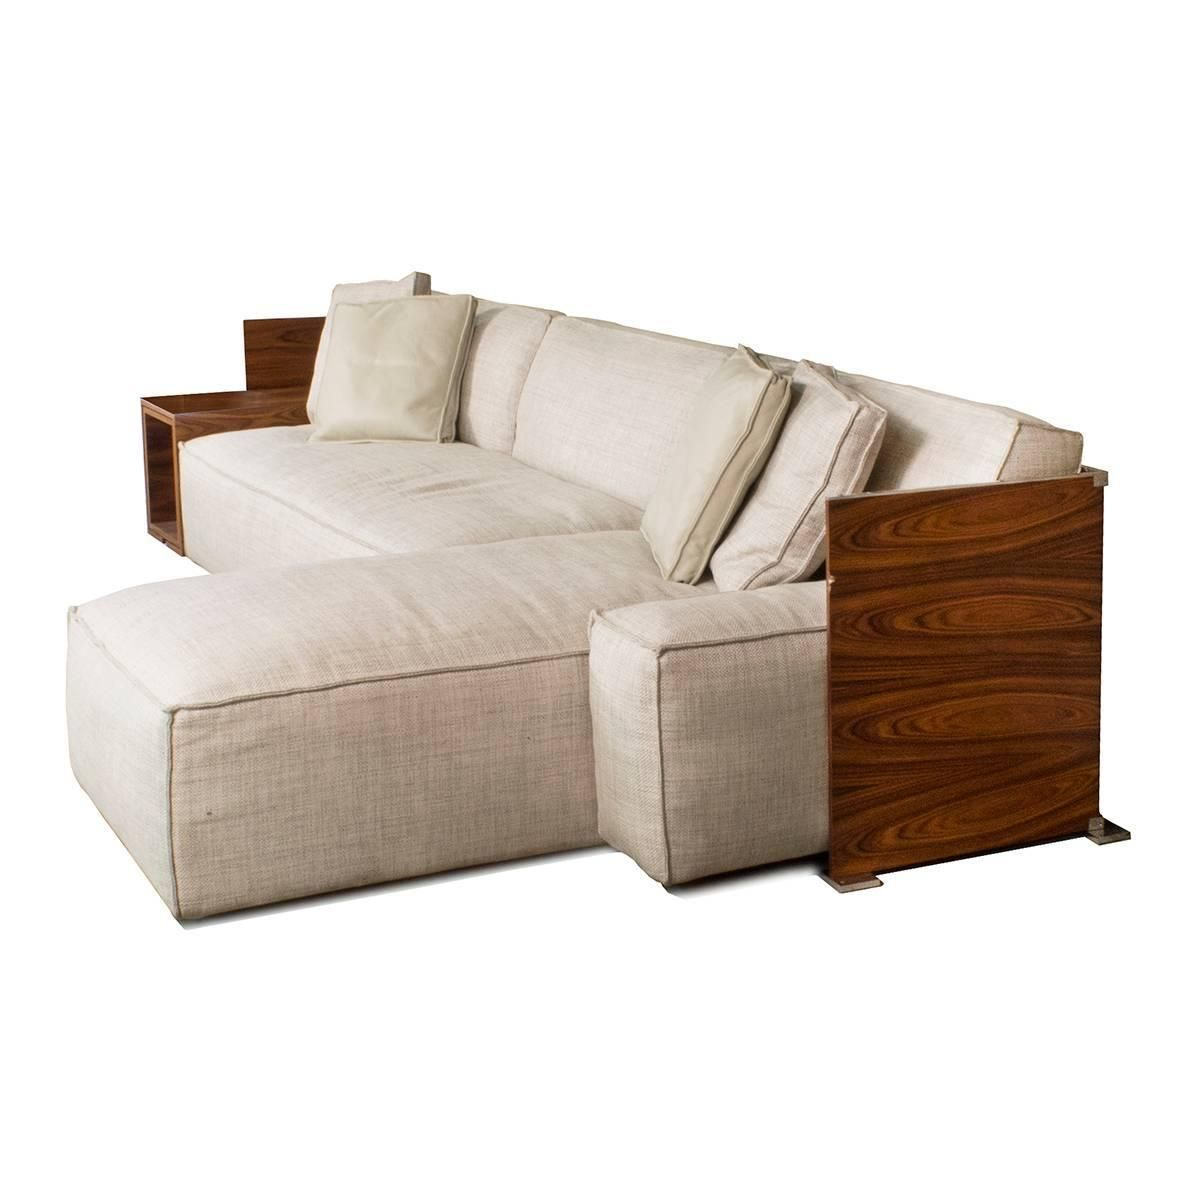 Cassina My World Sectional Sofa With Wood Shelves By Philippe Starck Italy 1stdibs Com Sectional Sofa Wood Shelves Sectional